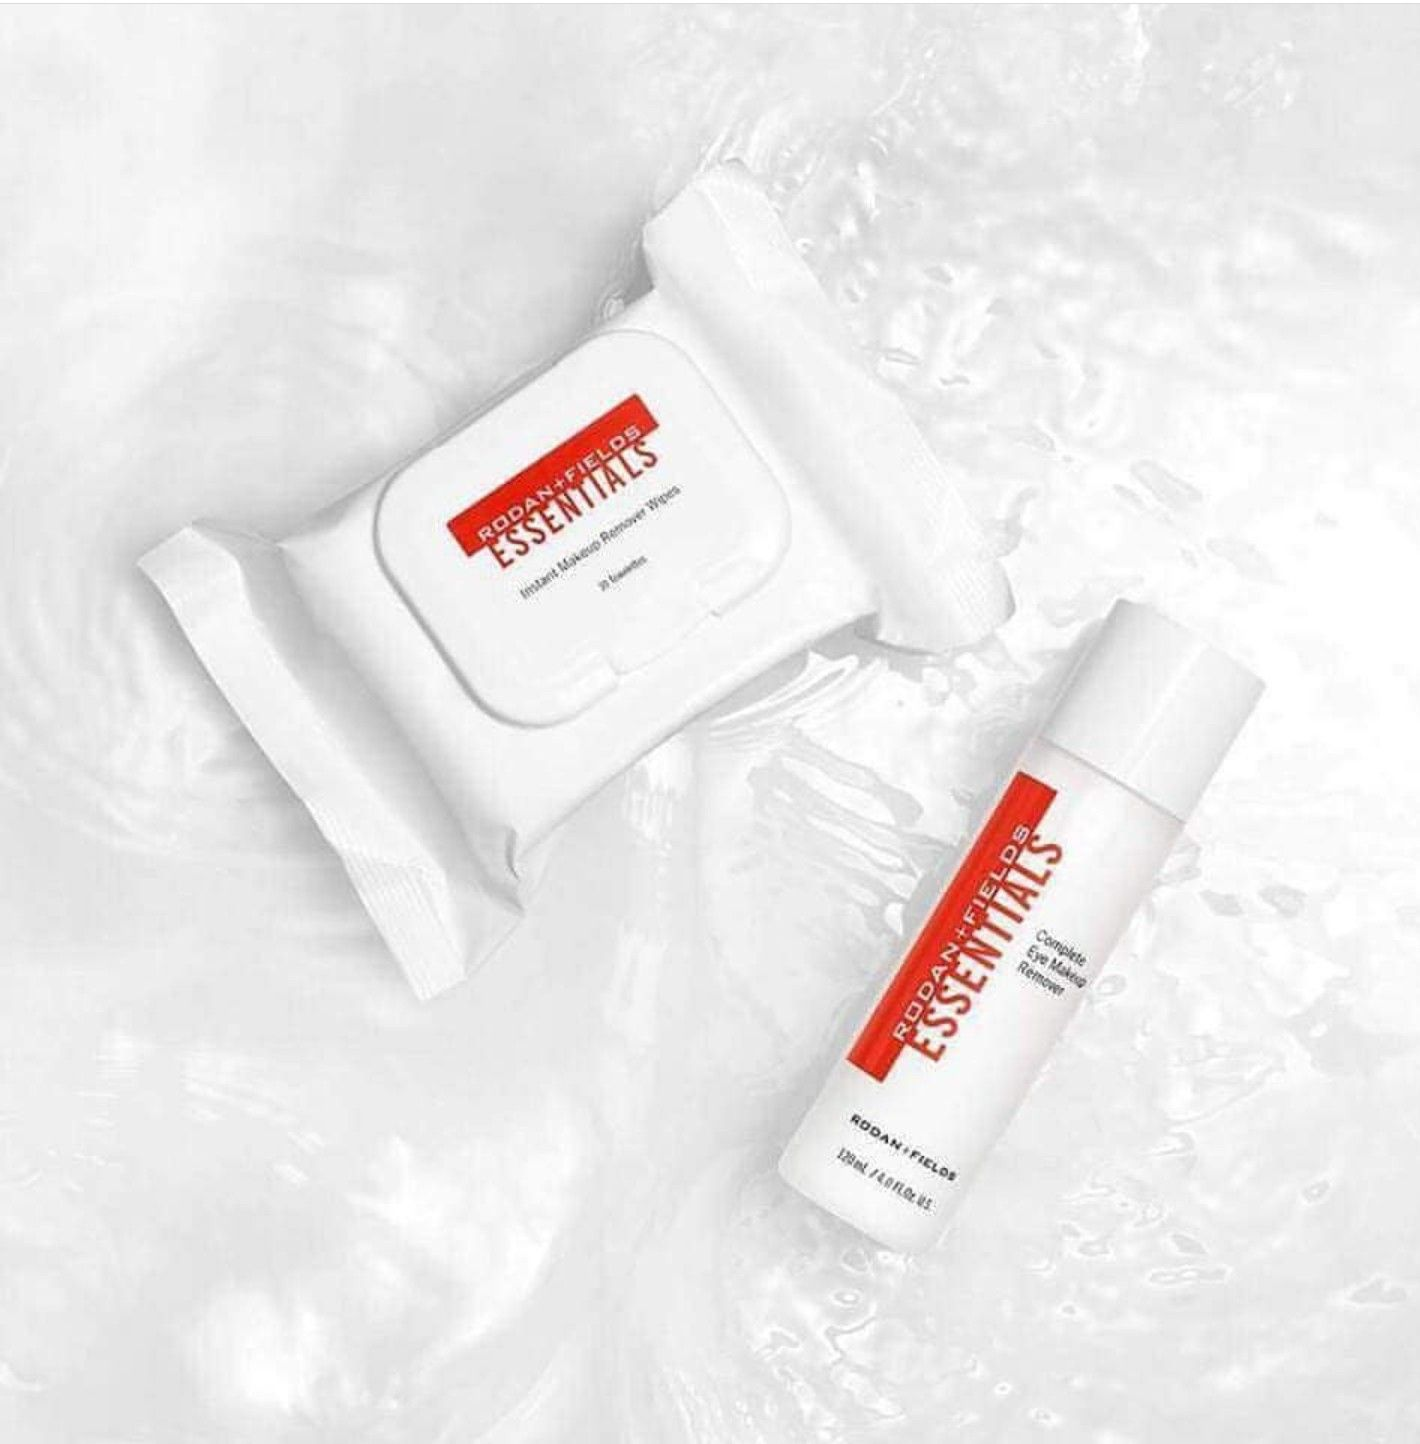 Rodan + Fields Makeup wipes and Makeup remover. No heavy